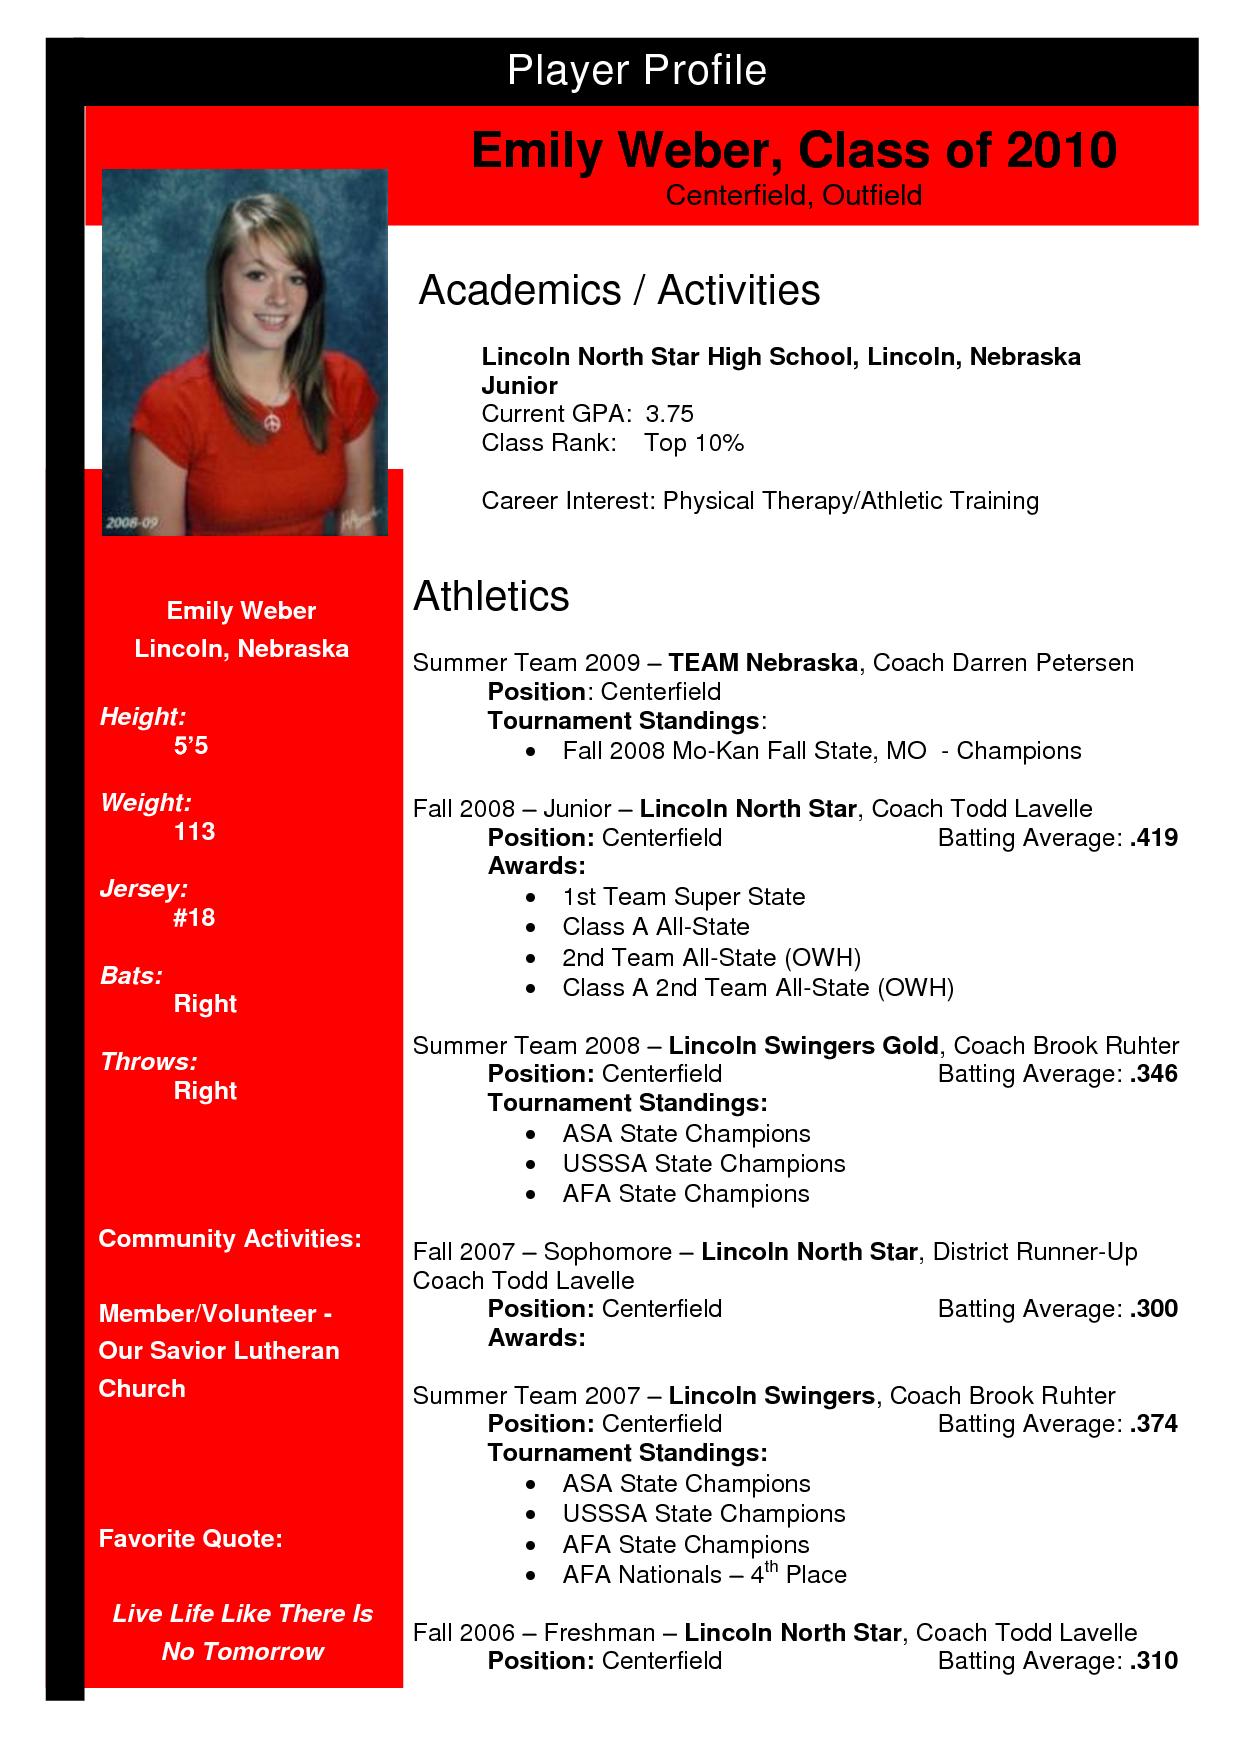 softball profile sle emily weber team nebraska